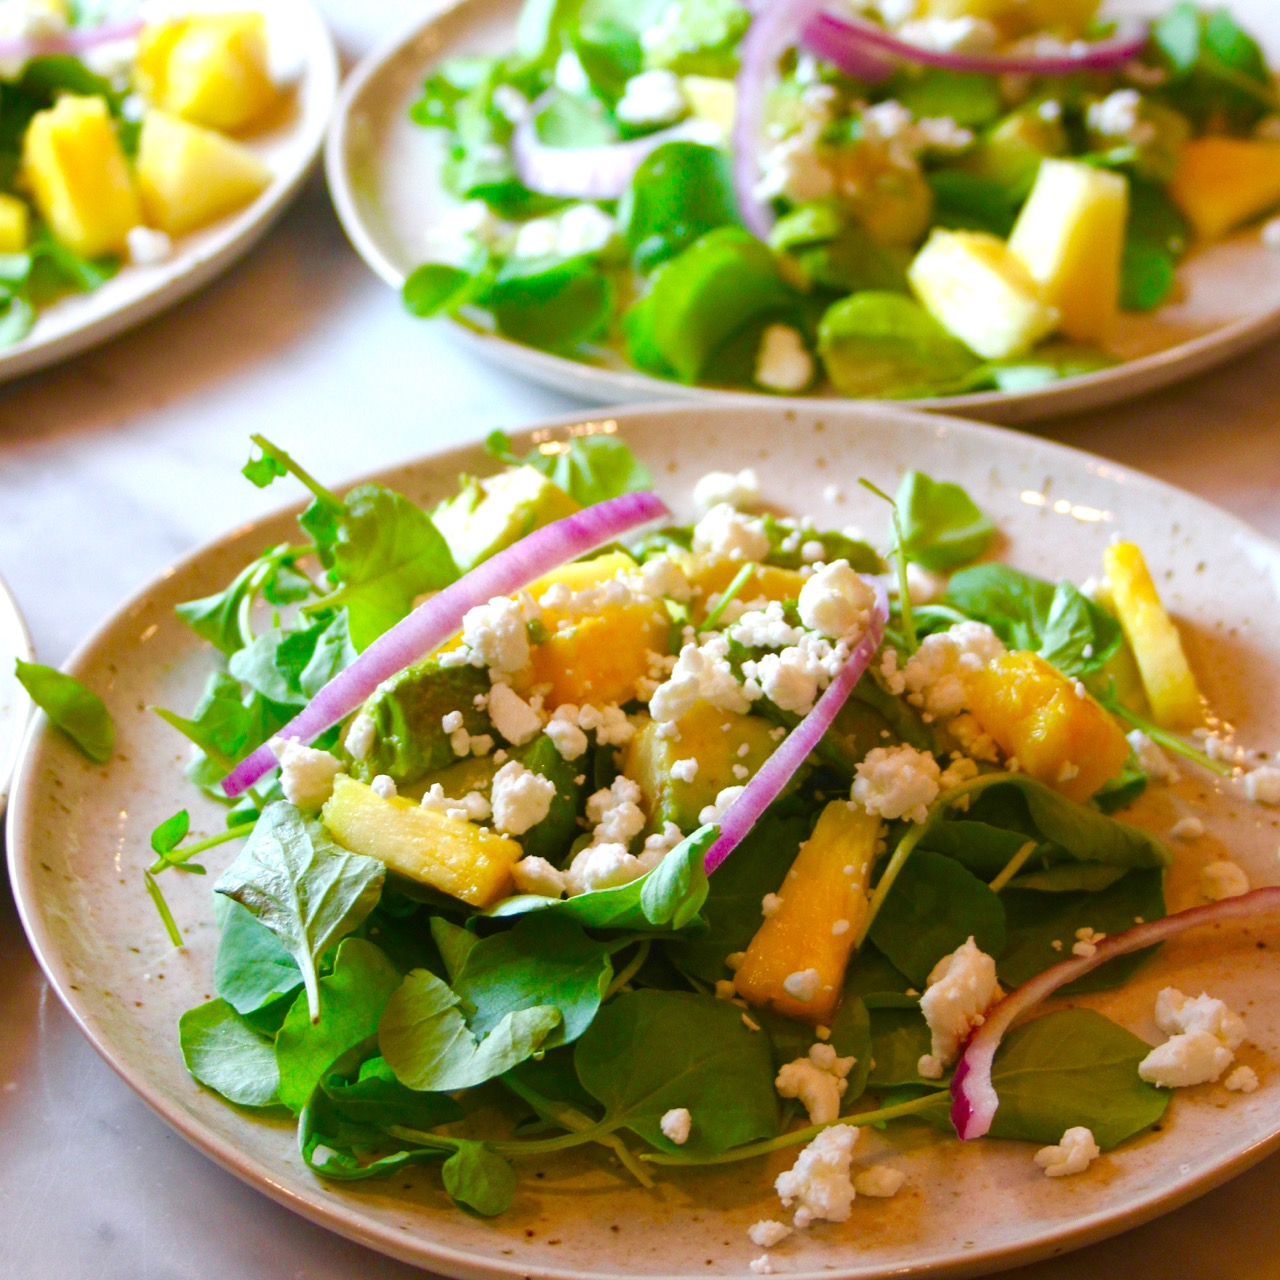 Cuban Salad with Pineapple and Avocado and Orange Sherry Vinaigrette